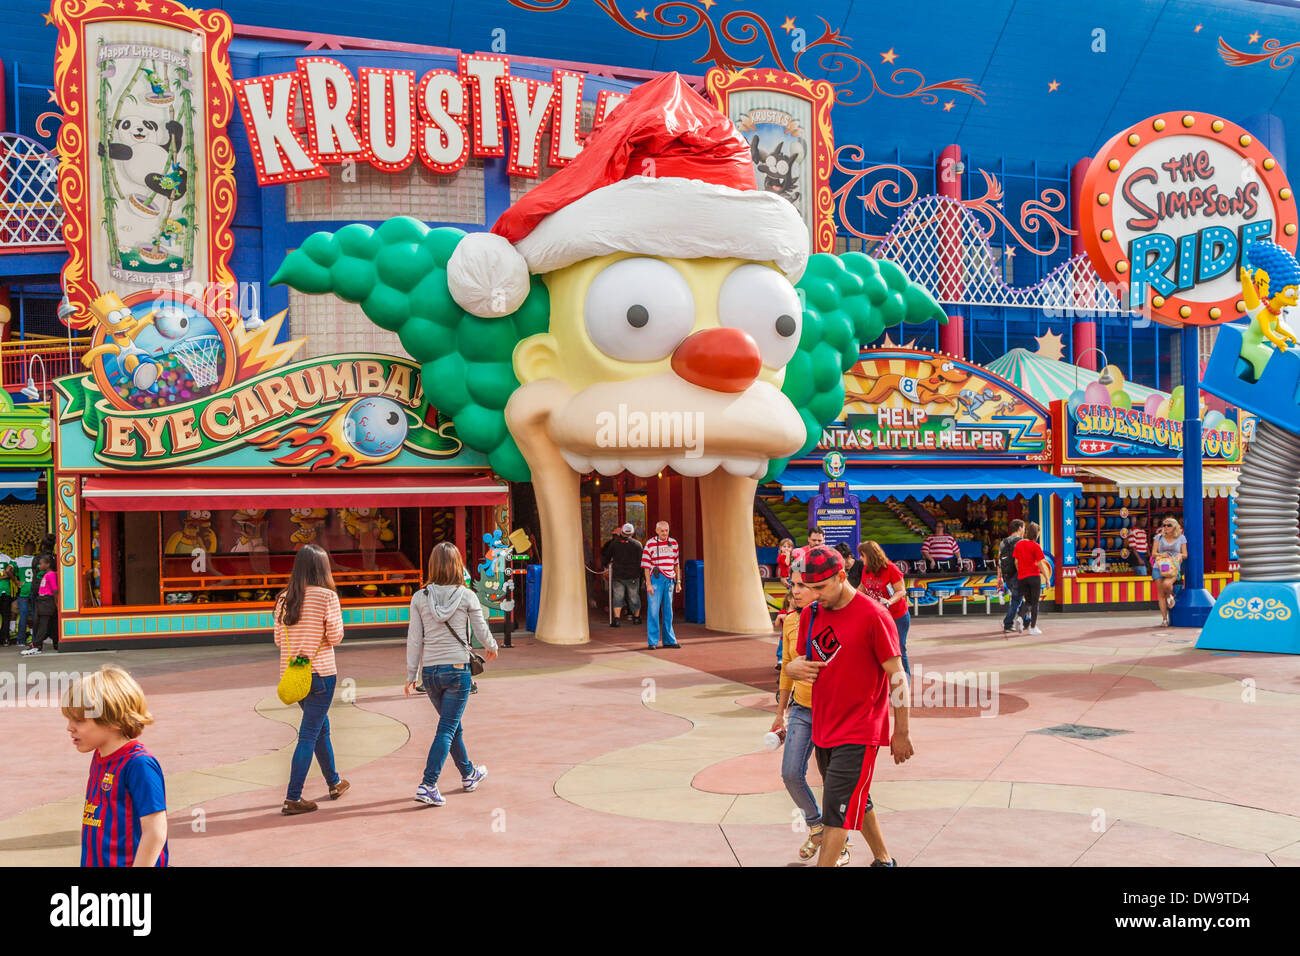 The Simpsons ride at Krustyland attraction at Universal Studios theme park in Orlando, Florida - Stock Image